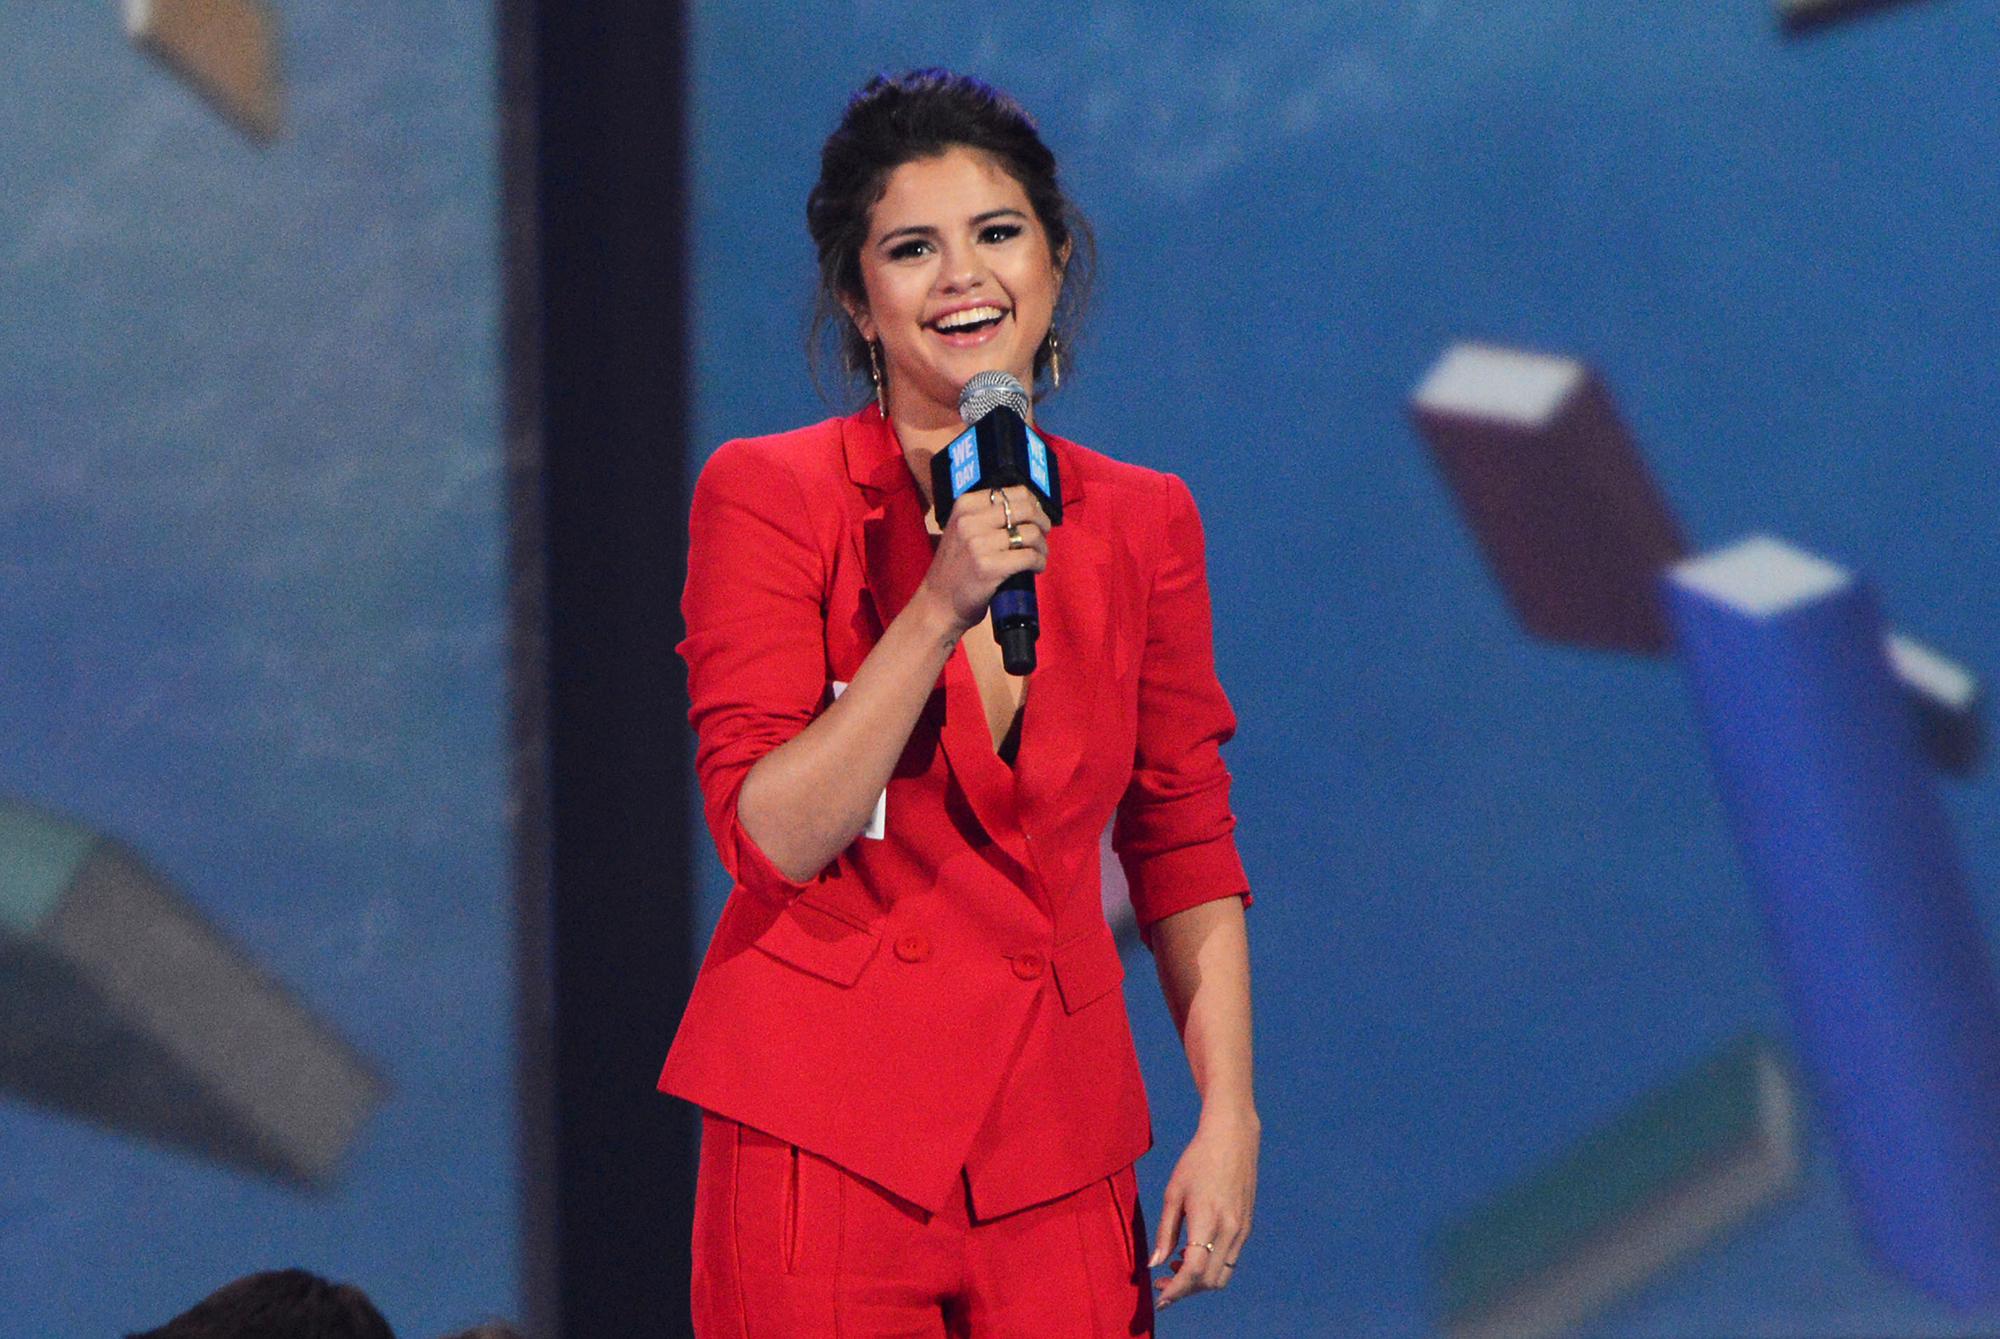 """Selena Gomez's Mental Health Battle In Her Own Words - The Disney alum gave an inspiring speech at the We Day conference in March 2014. """"I'm surrounded by people who are supposed to guide me, and some of them have, and others haven't. They pressure me. There's so much pressure. You gotta be sexy, you gotta be cute, you gotta be nice. You gotta be all these things,"""" she told the crowd."""